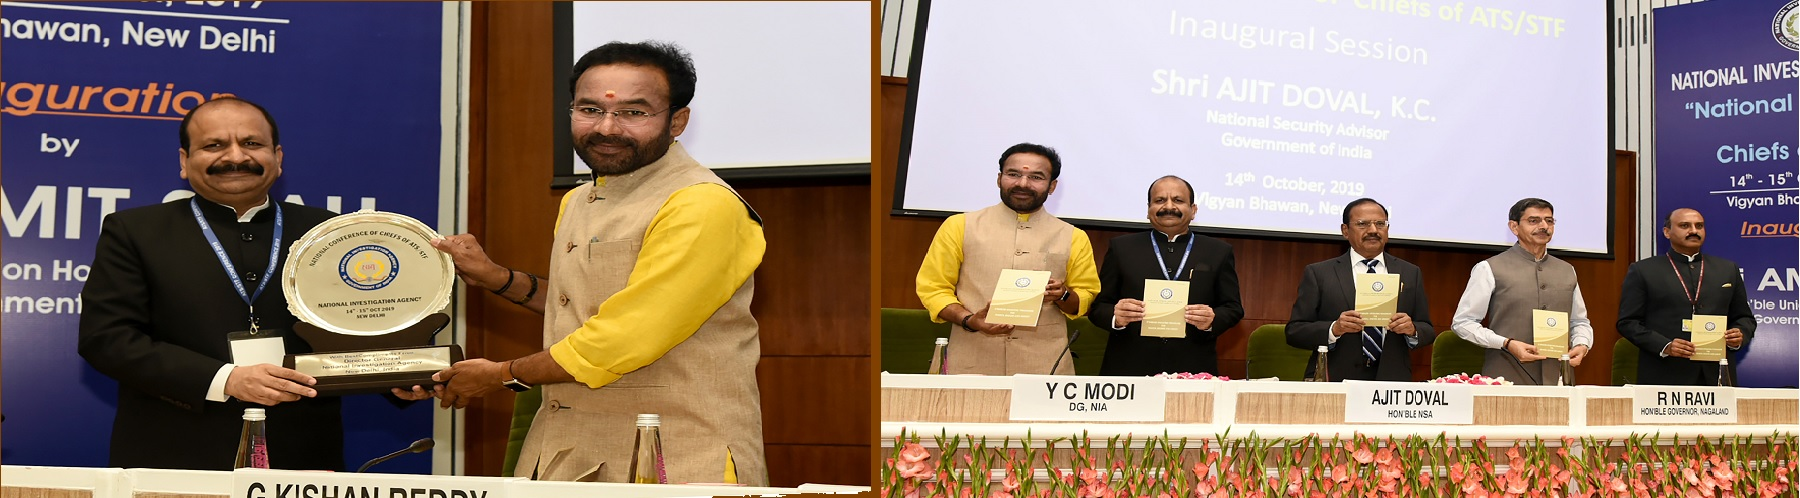 The Minister of State for Home Affairs Shri G. Kishan Reddy at the National Conference of Chiefs of ATS/STFs organised by NIA in New Delhi on 14 October, 2019.